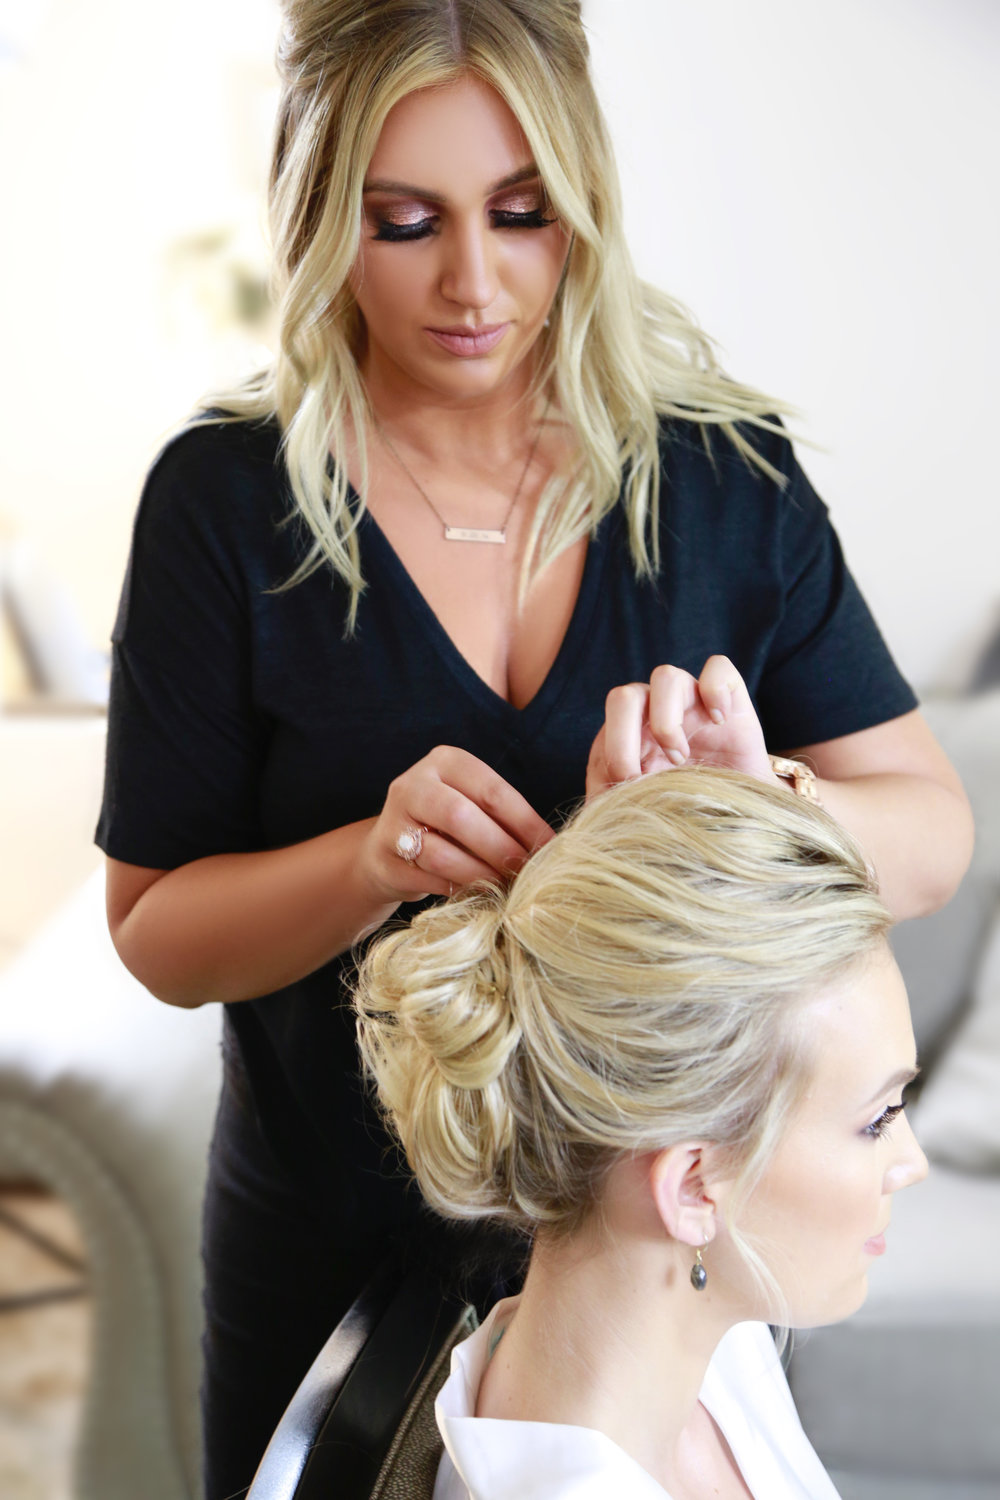 DANI D - ELITE HAIR & MAKEUP ARTISTDani has been a featured stylist at Beauty Studio Inc for over 5 years.She specializes in braids, boho, polished hair looks as well as makeupTo view examples of Dani's work, please click on each link below to expand her galleries: